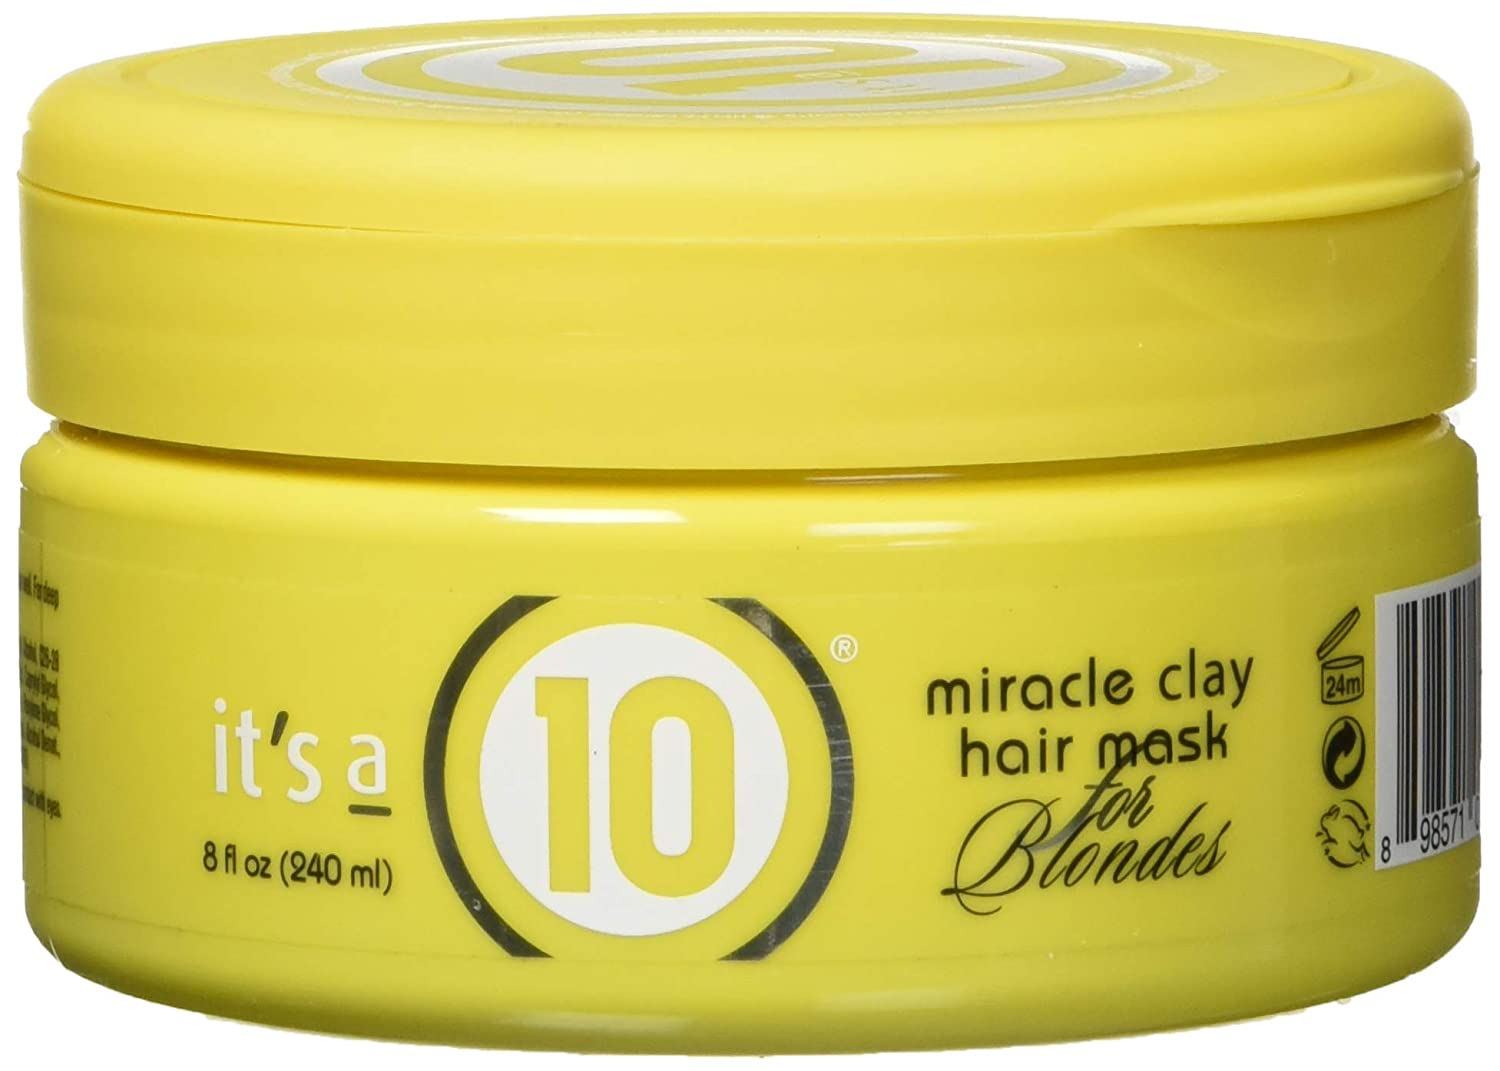 It's A 10 Miracle Clay Hair Mask for Blondes By Its A 10 for Unisex - 8 Ounce Hair Mask, 8 Ounce